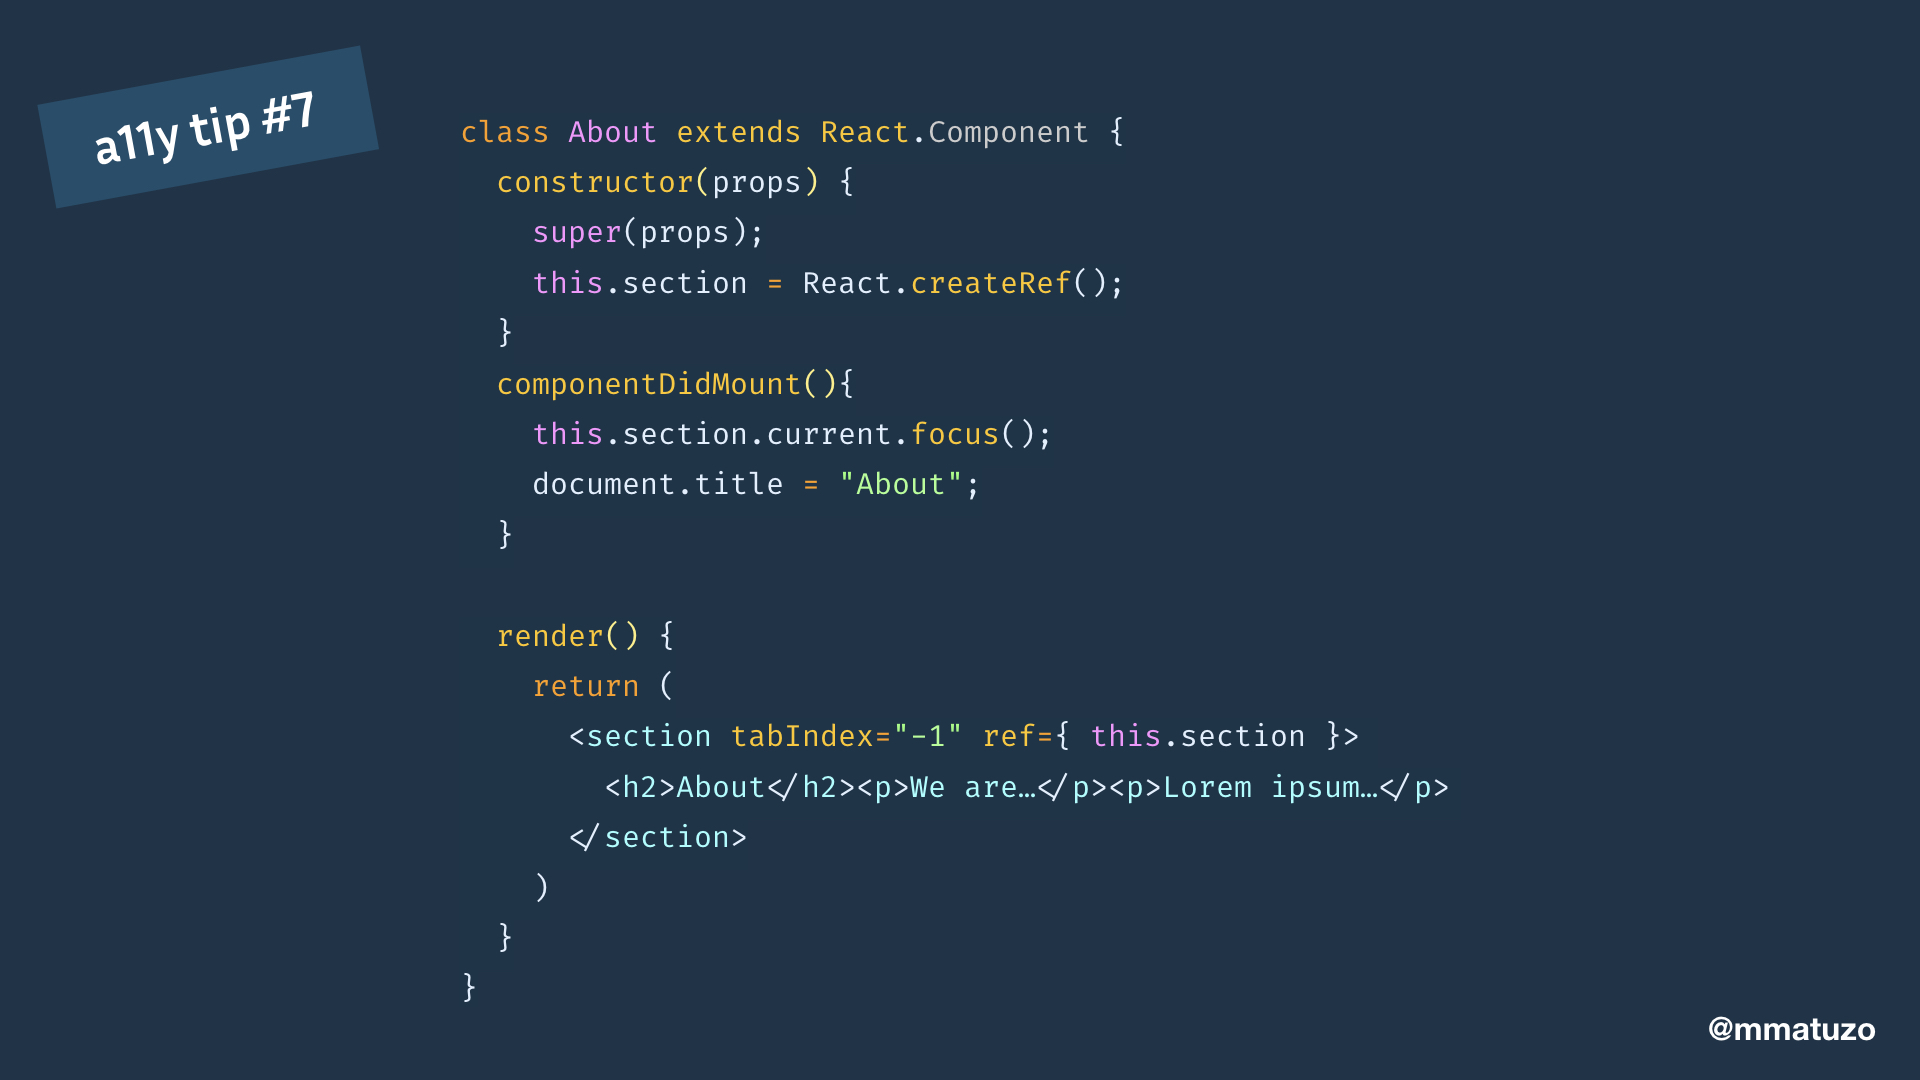 """class About extends React.Component { constructor(props) { super(props); this.section = React.createRef(); } componentDidMount(){ this.section.current.focus(); document.title = """"About""""; } render() { return ( <section tabIndex=""""-1"""" ref={ this.section }> AboutWe are…Lorem ipsum…  ) } }"""